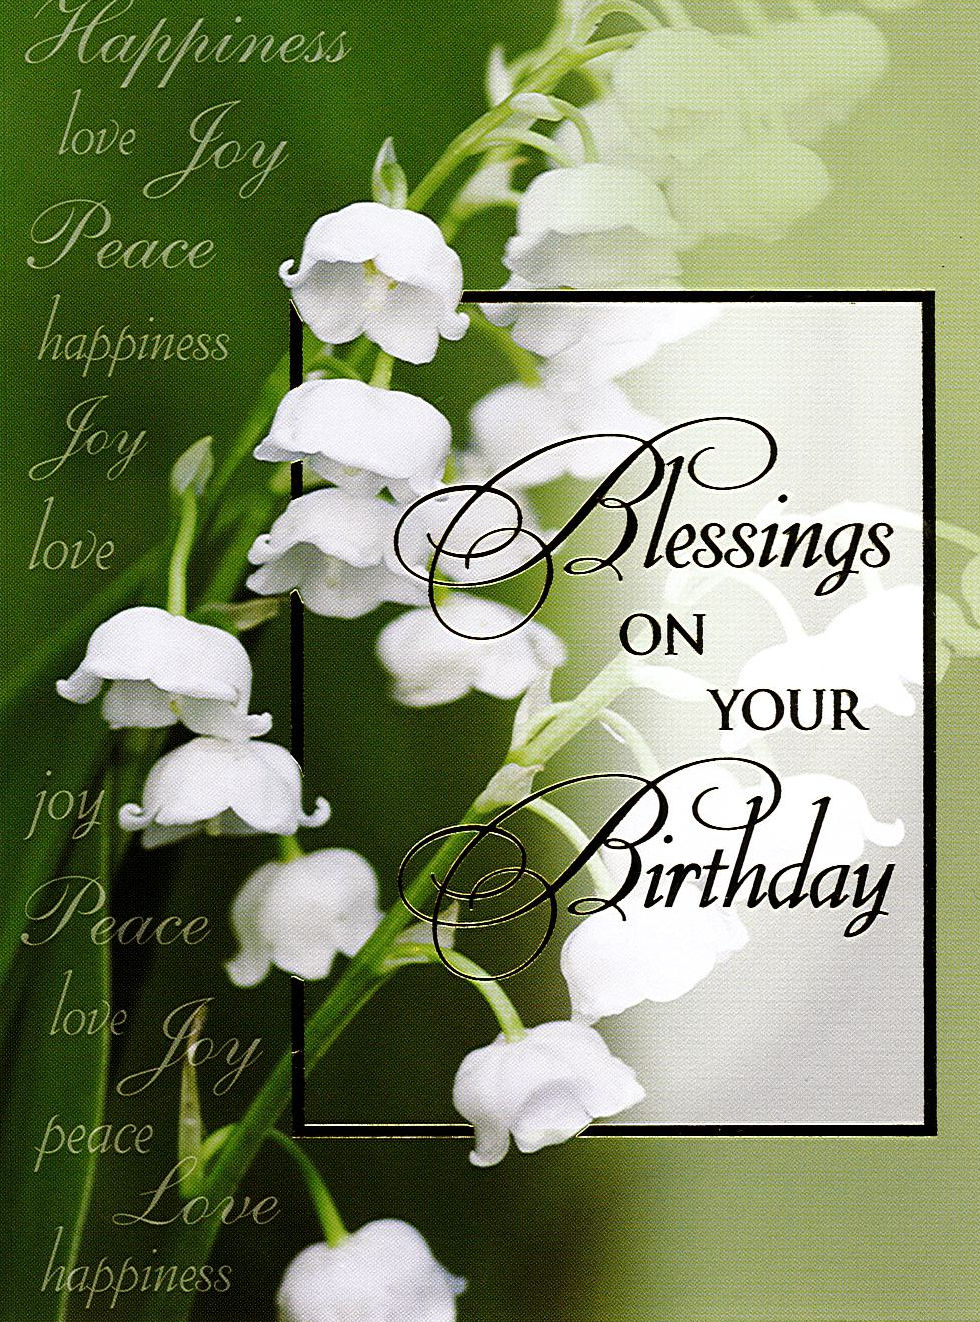 Mass Card Blessings On Your Birthday